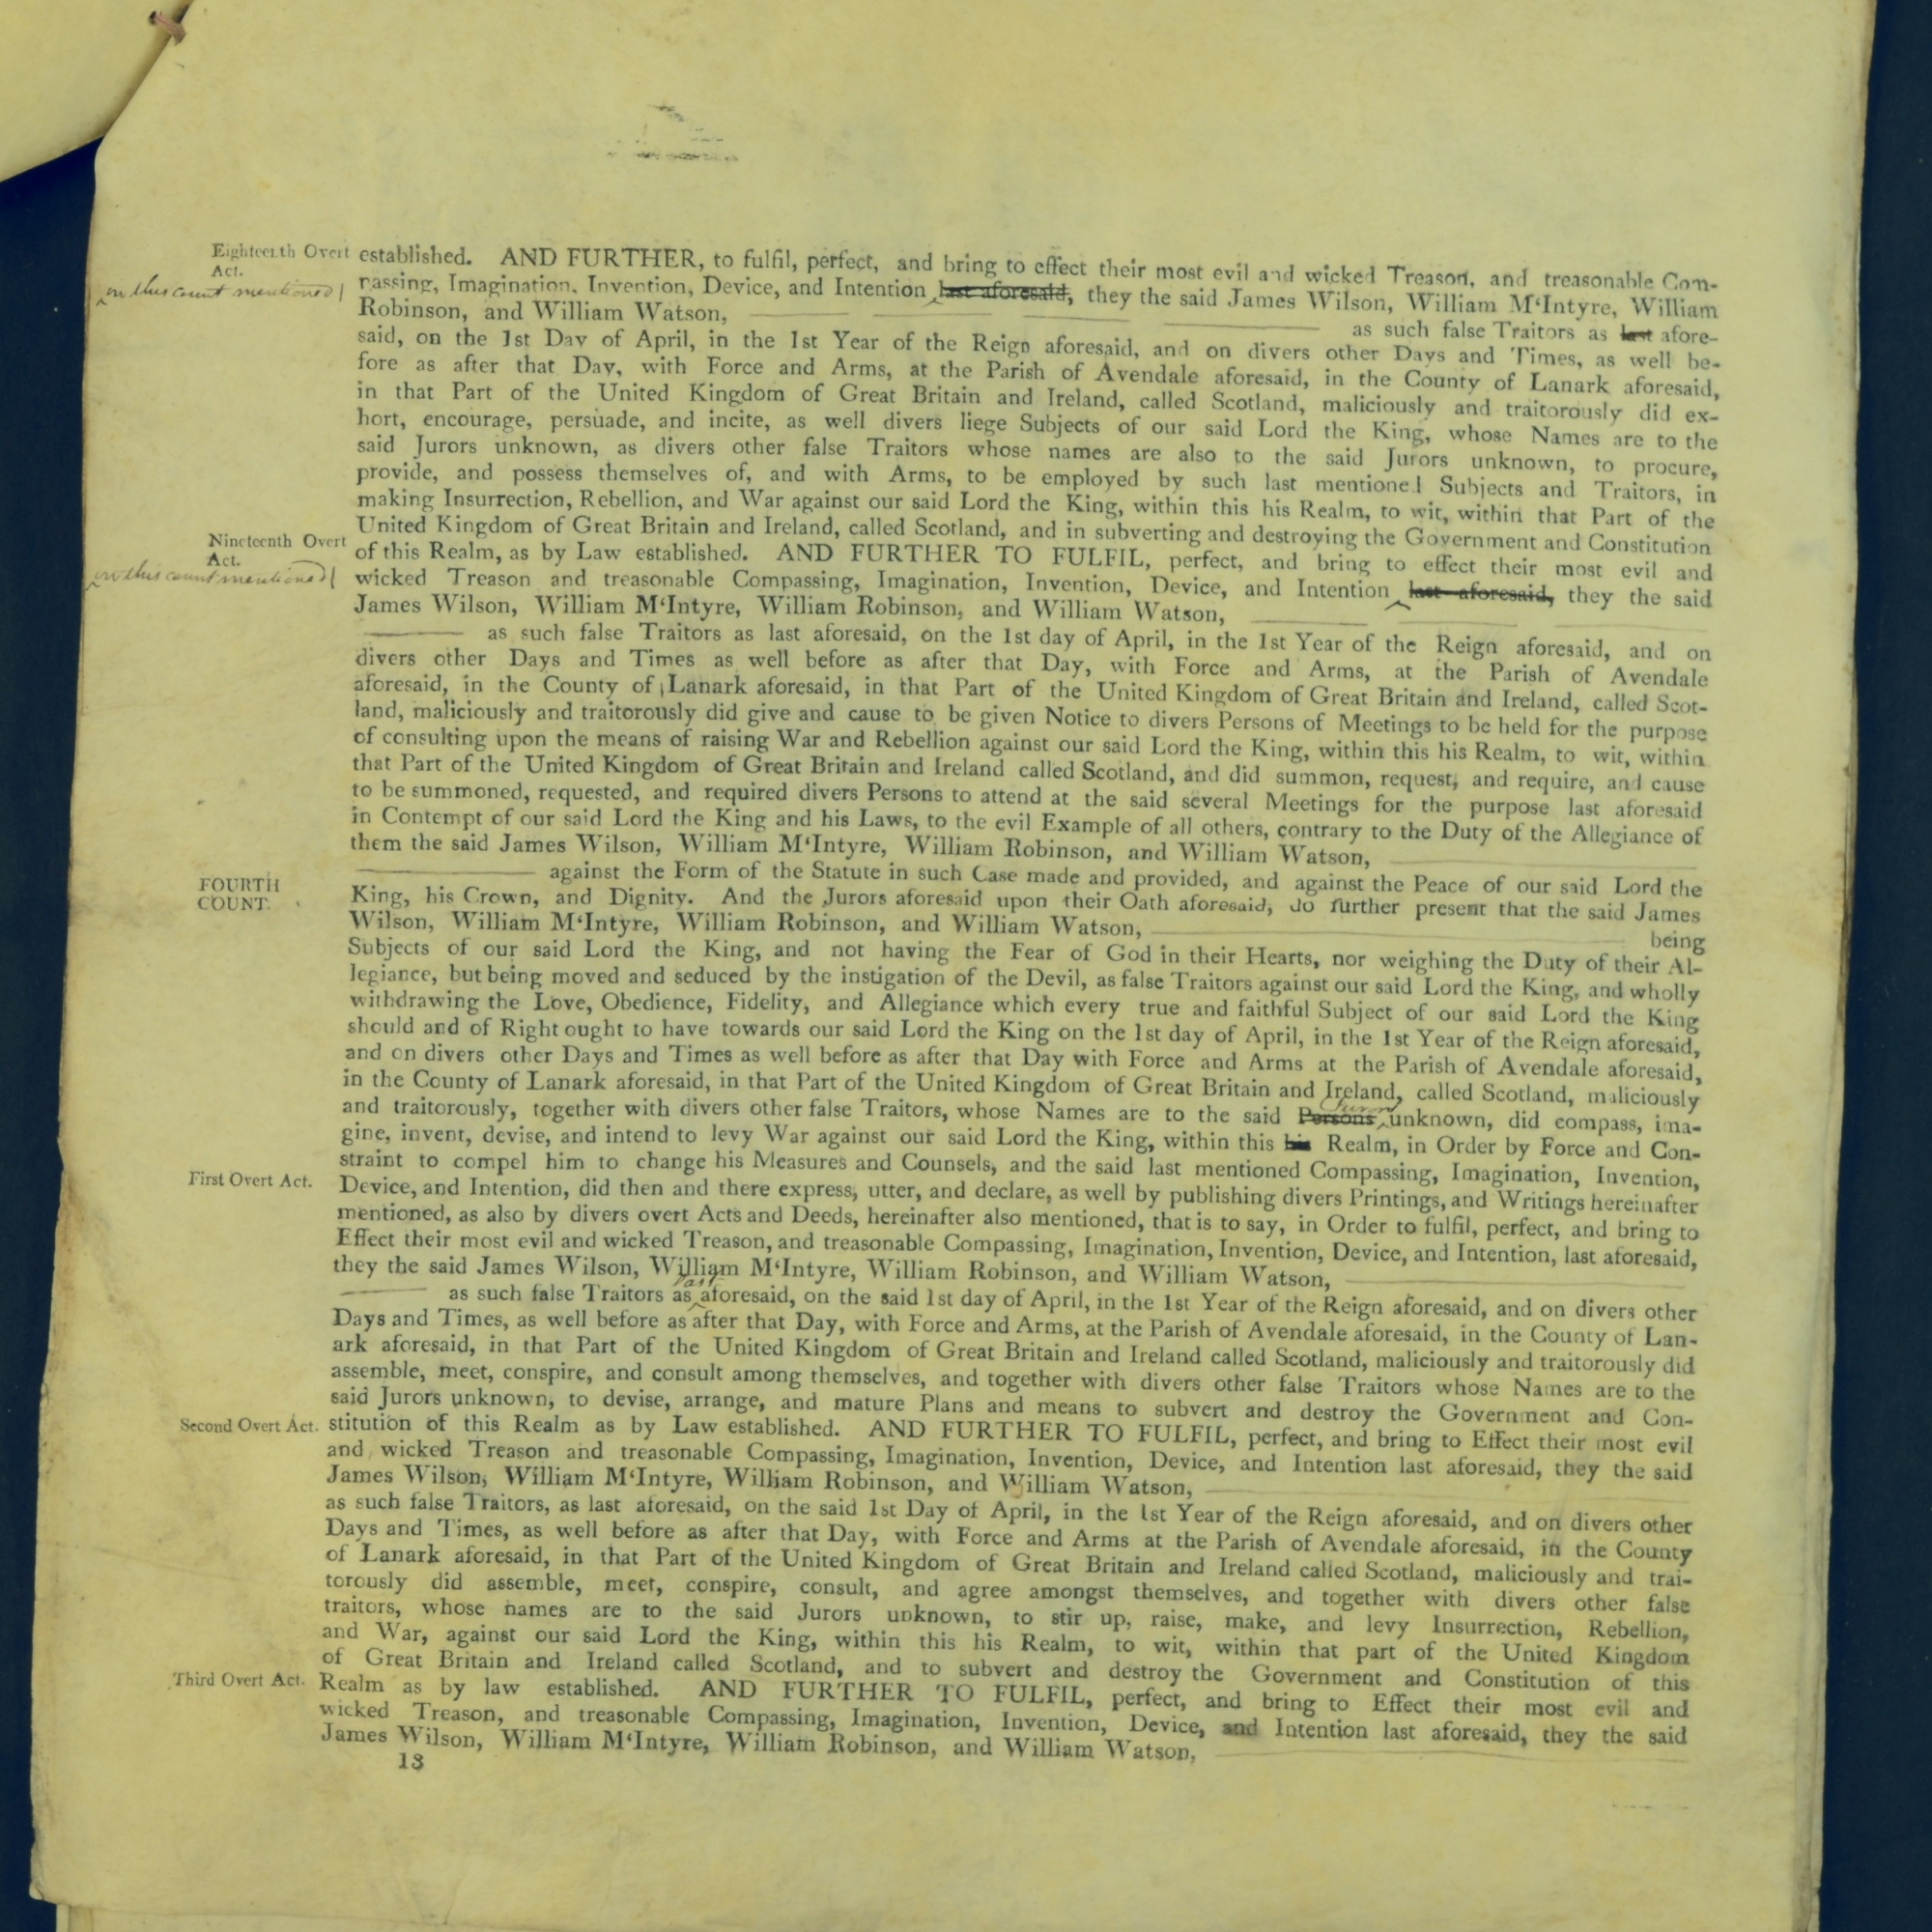 Treason Trials for the County of Lanark, the Strathaven Case. True bills found against four men, James Wilson, William McIntyre, William Robinson and William Watson. National Records of Scotland, Crown copyright, JC21/3/4 p13